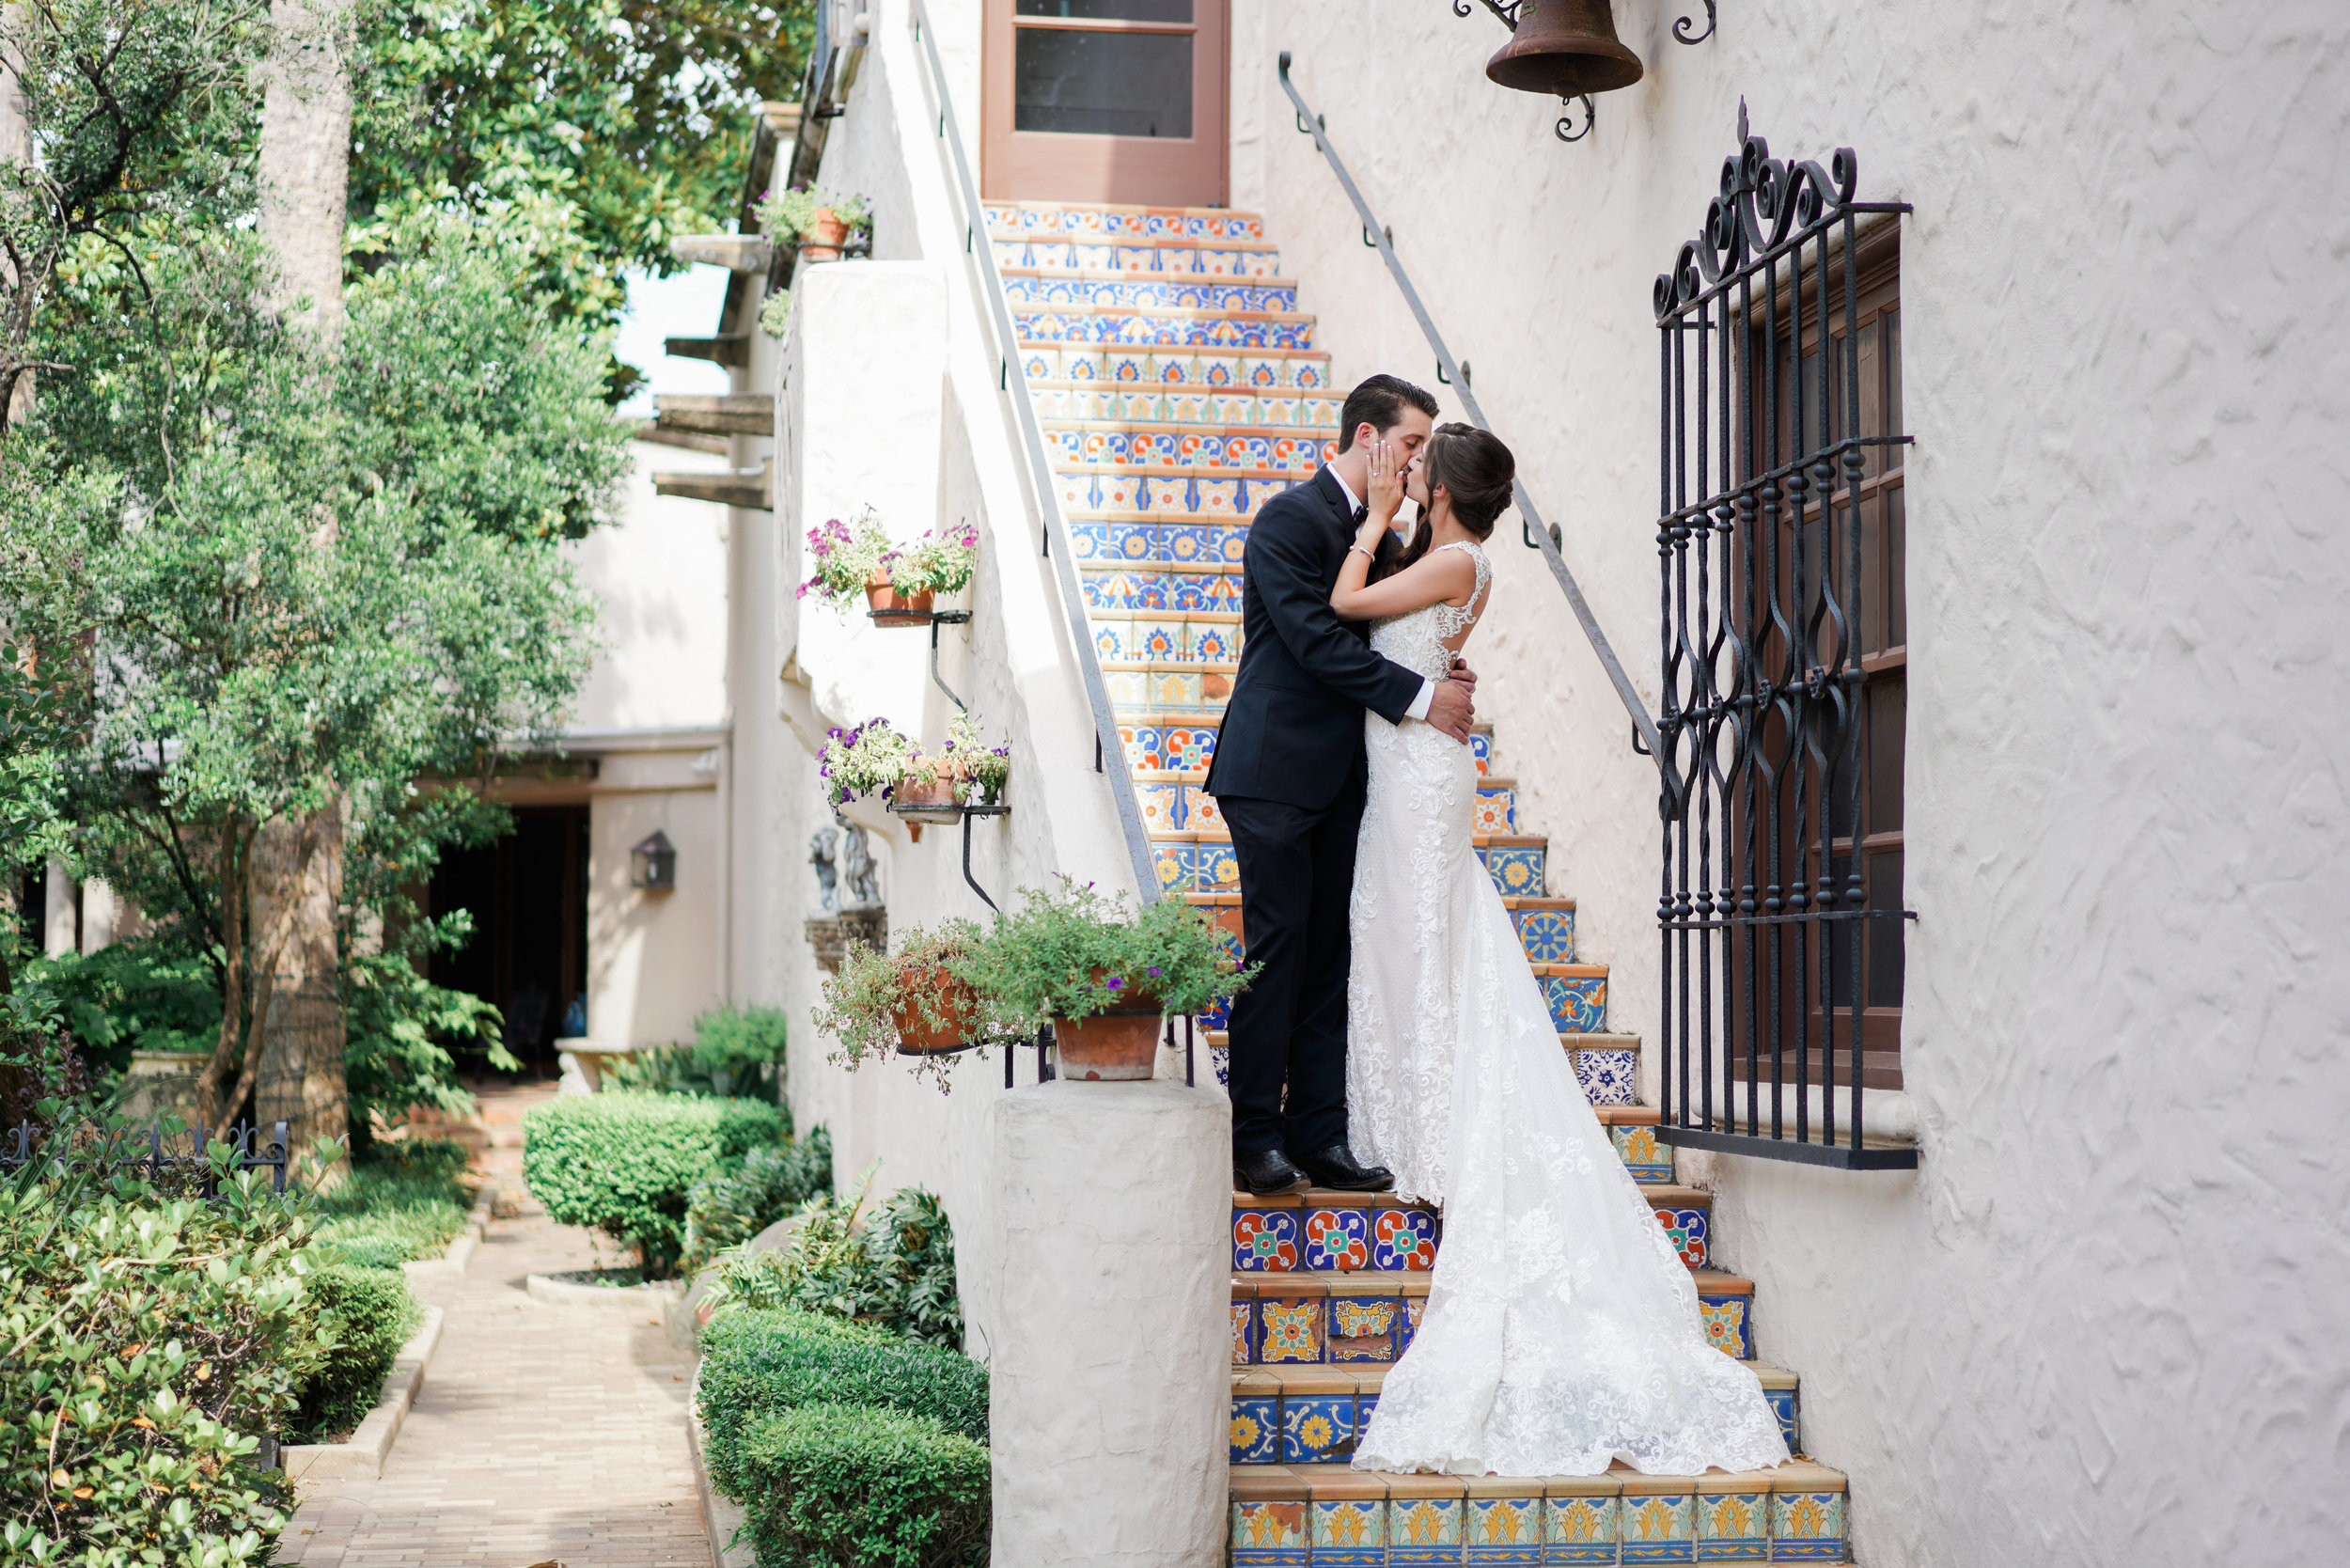 McNay Wedding Photographer- Caitlin Rose Photography. McNay Art Museum Wedding Photos